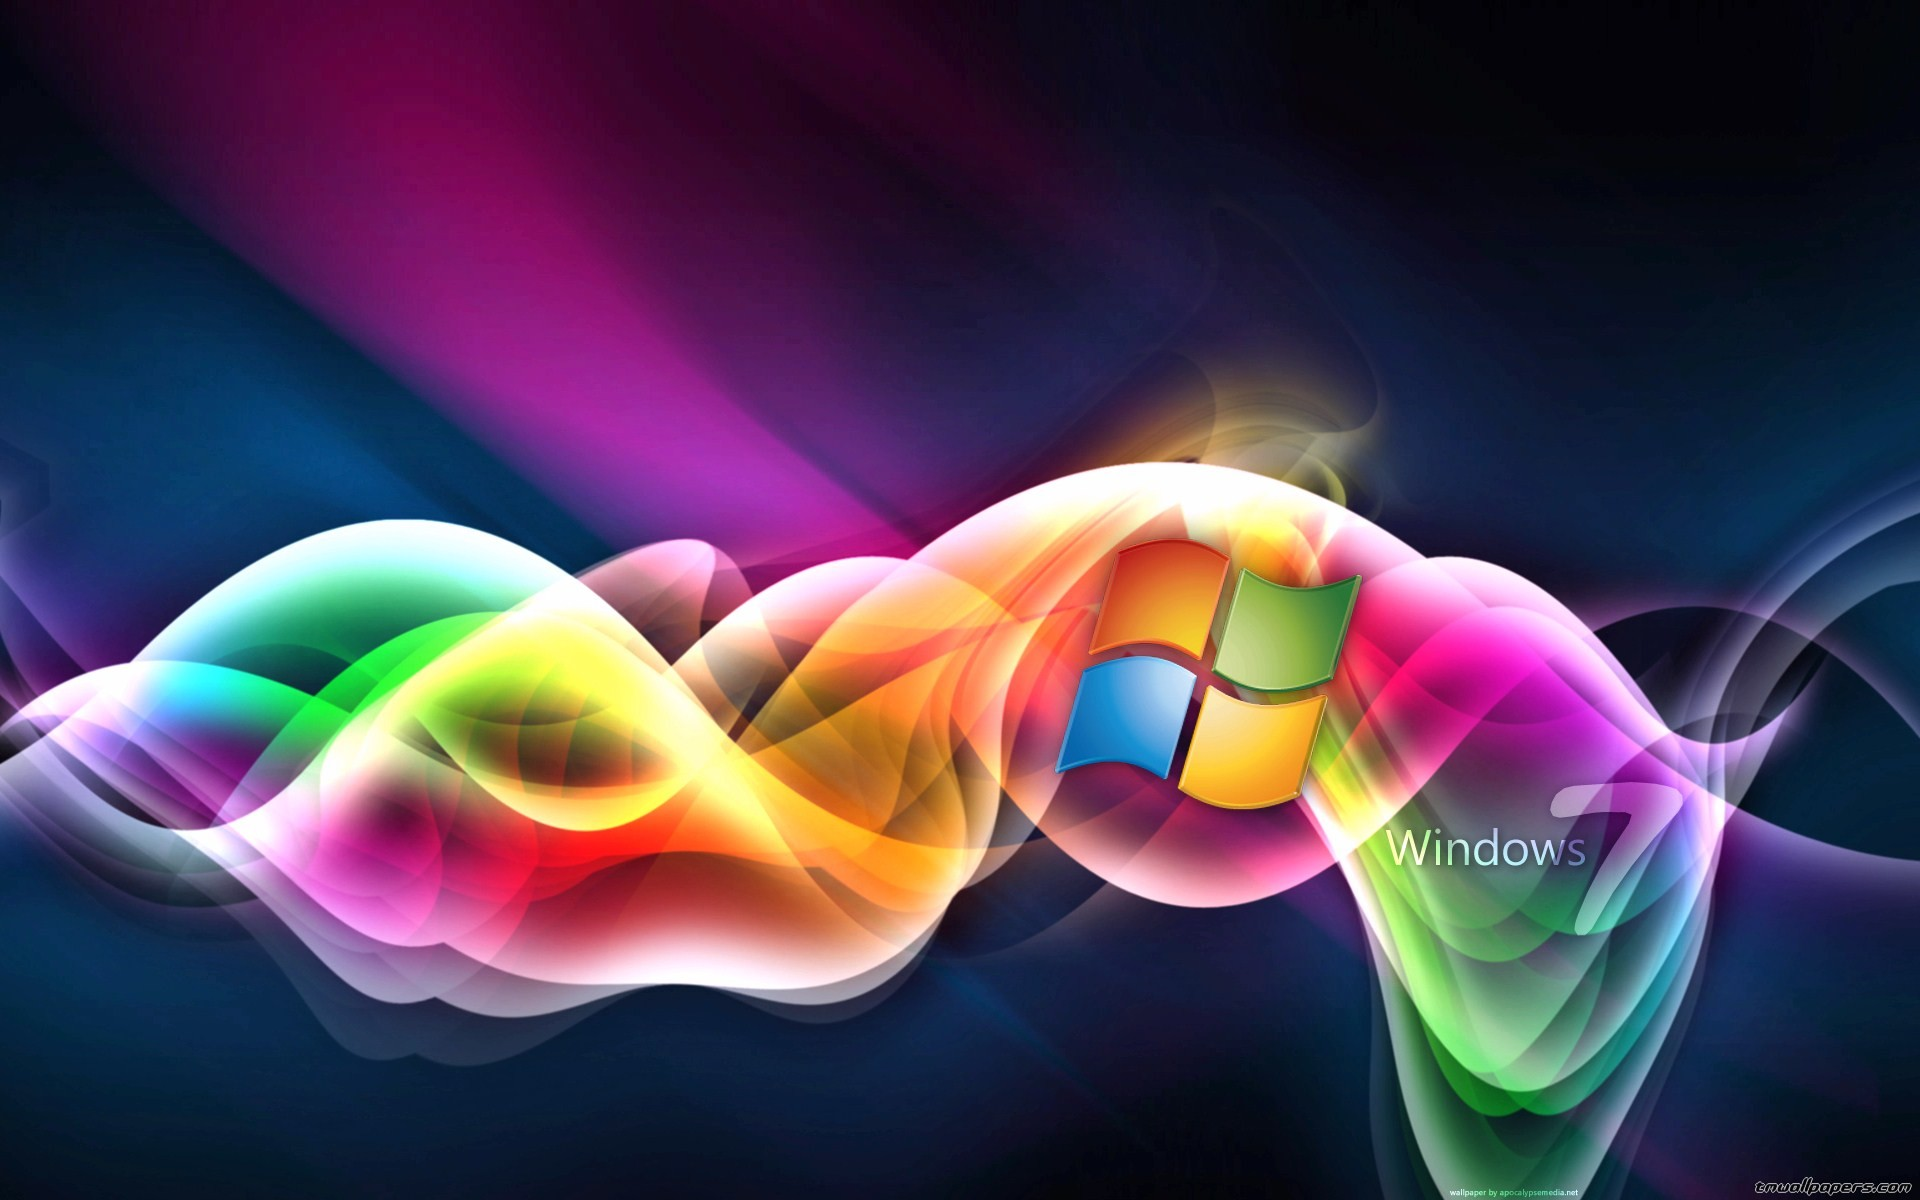 Moving Wallpaper Windows 7 50 Images